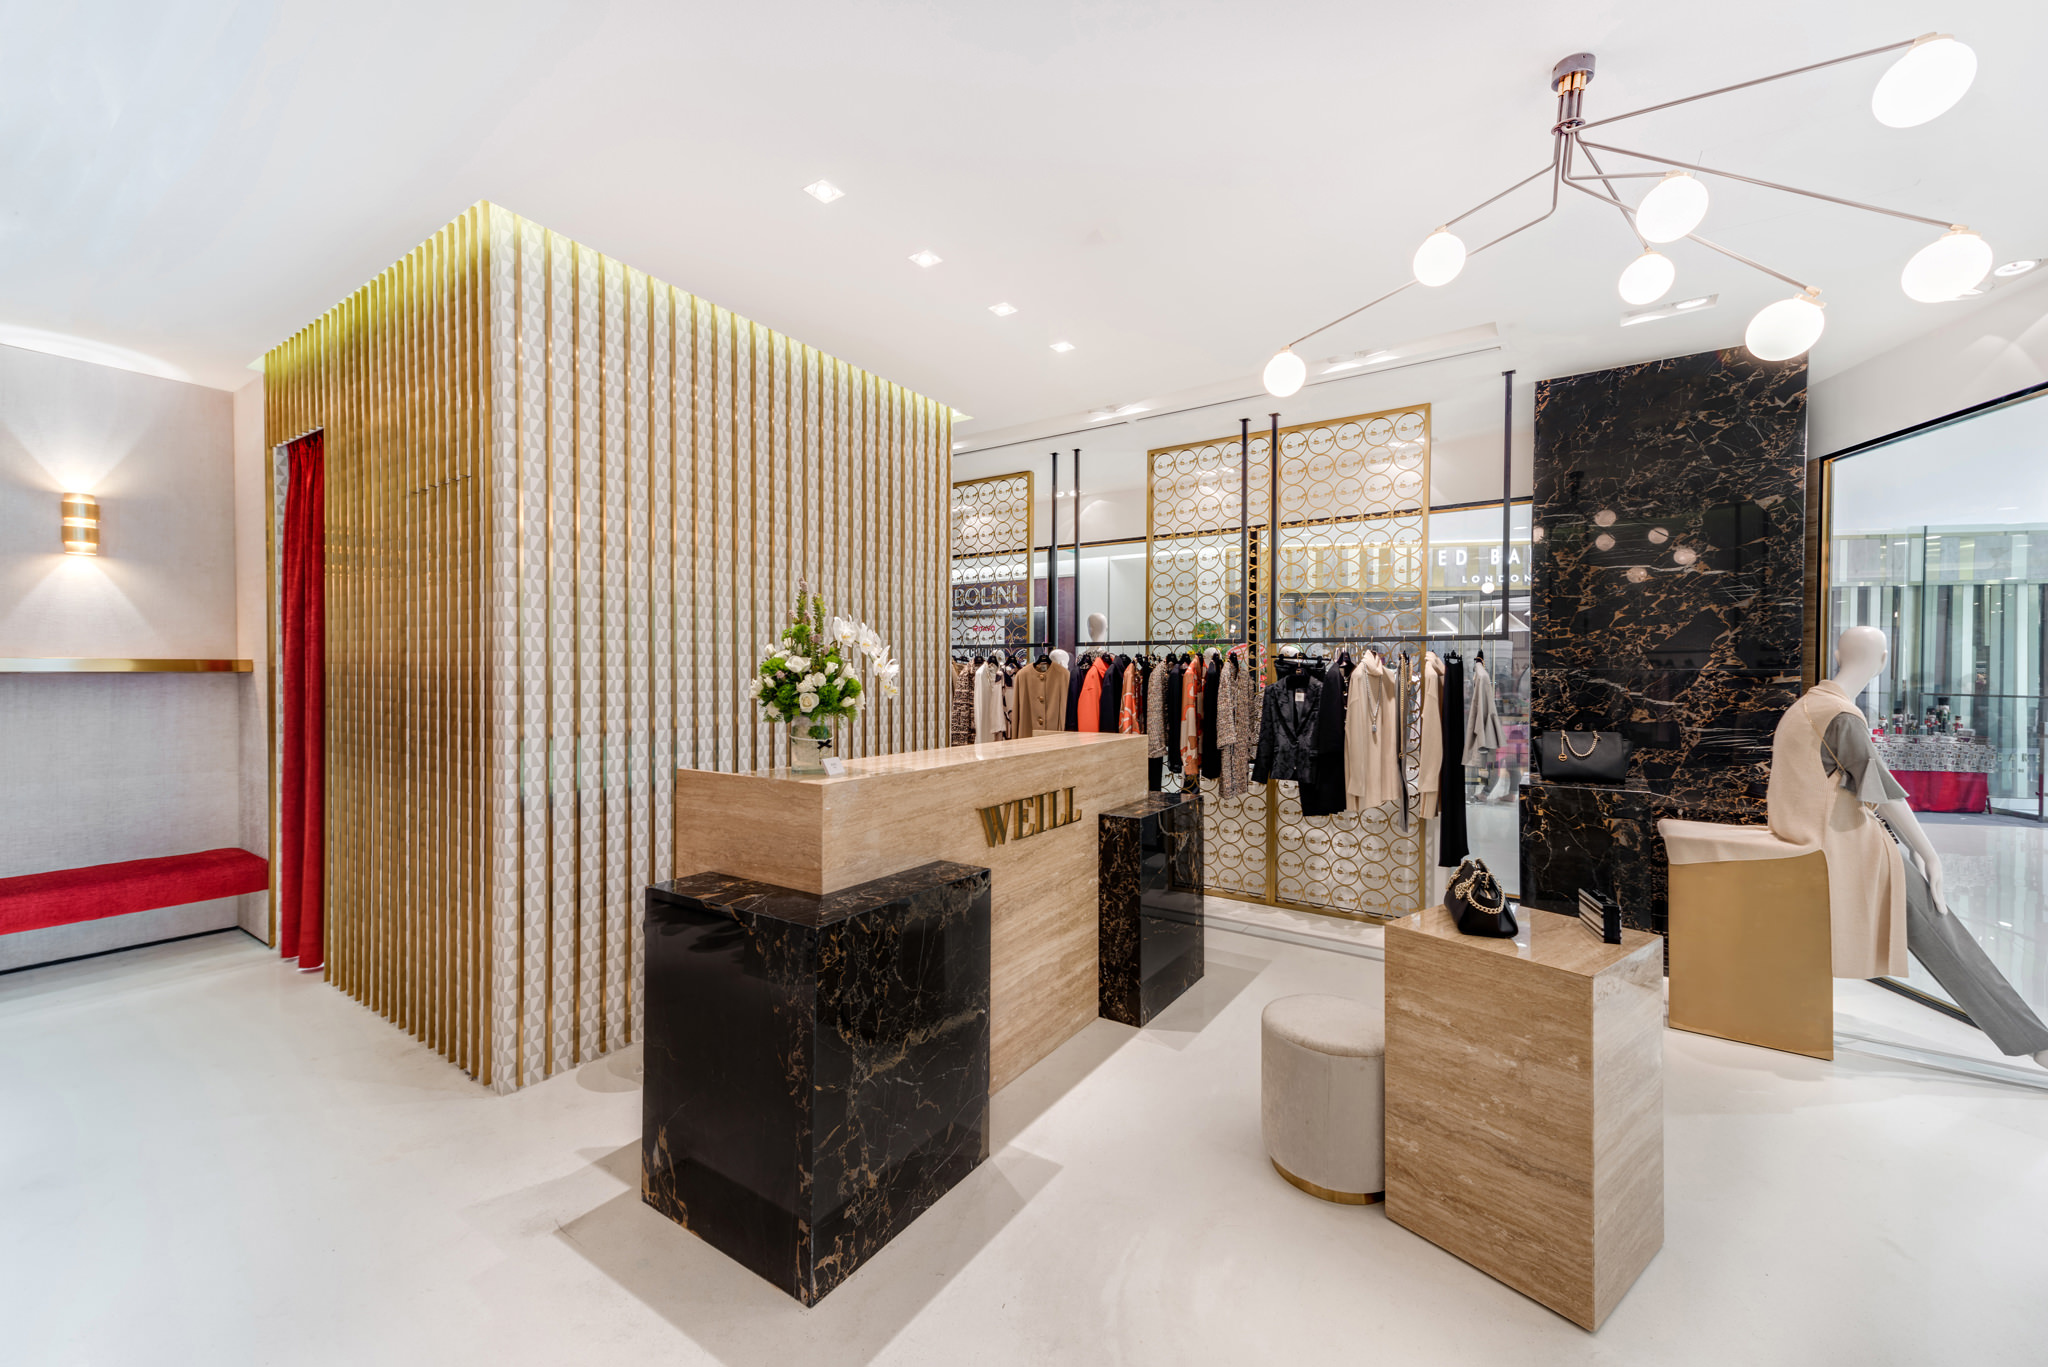 20160801 - Weill - HCM - Commercial - Interior - Store - Retouch 0005.jpg